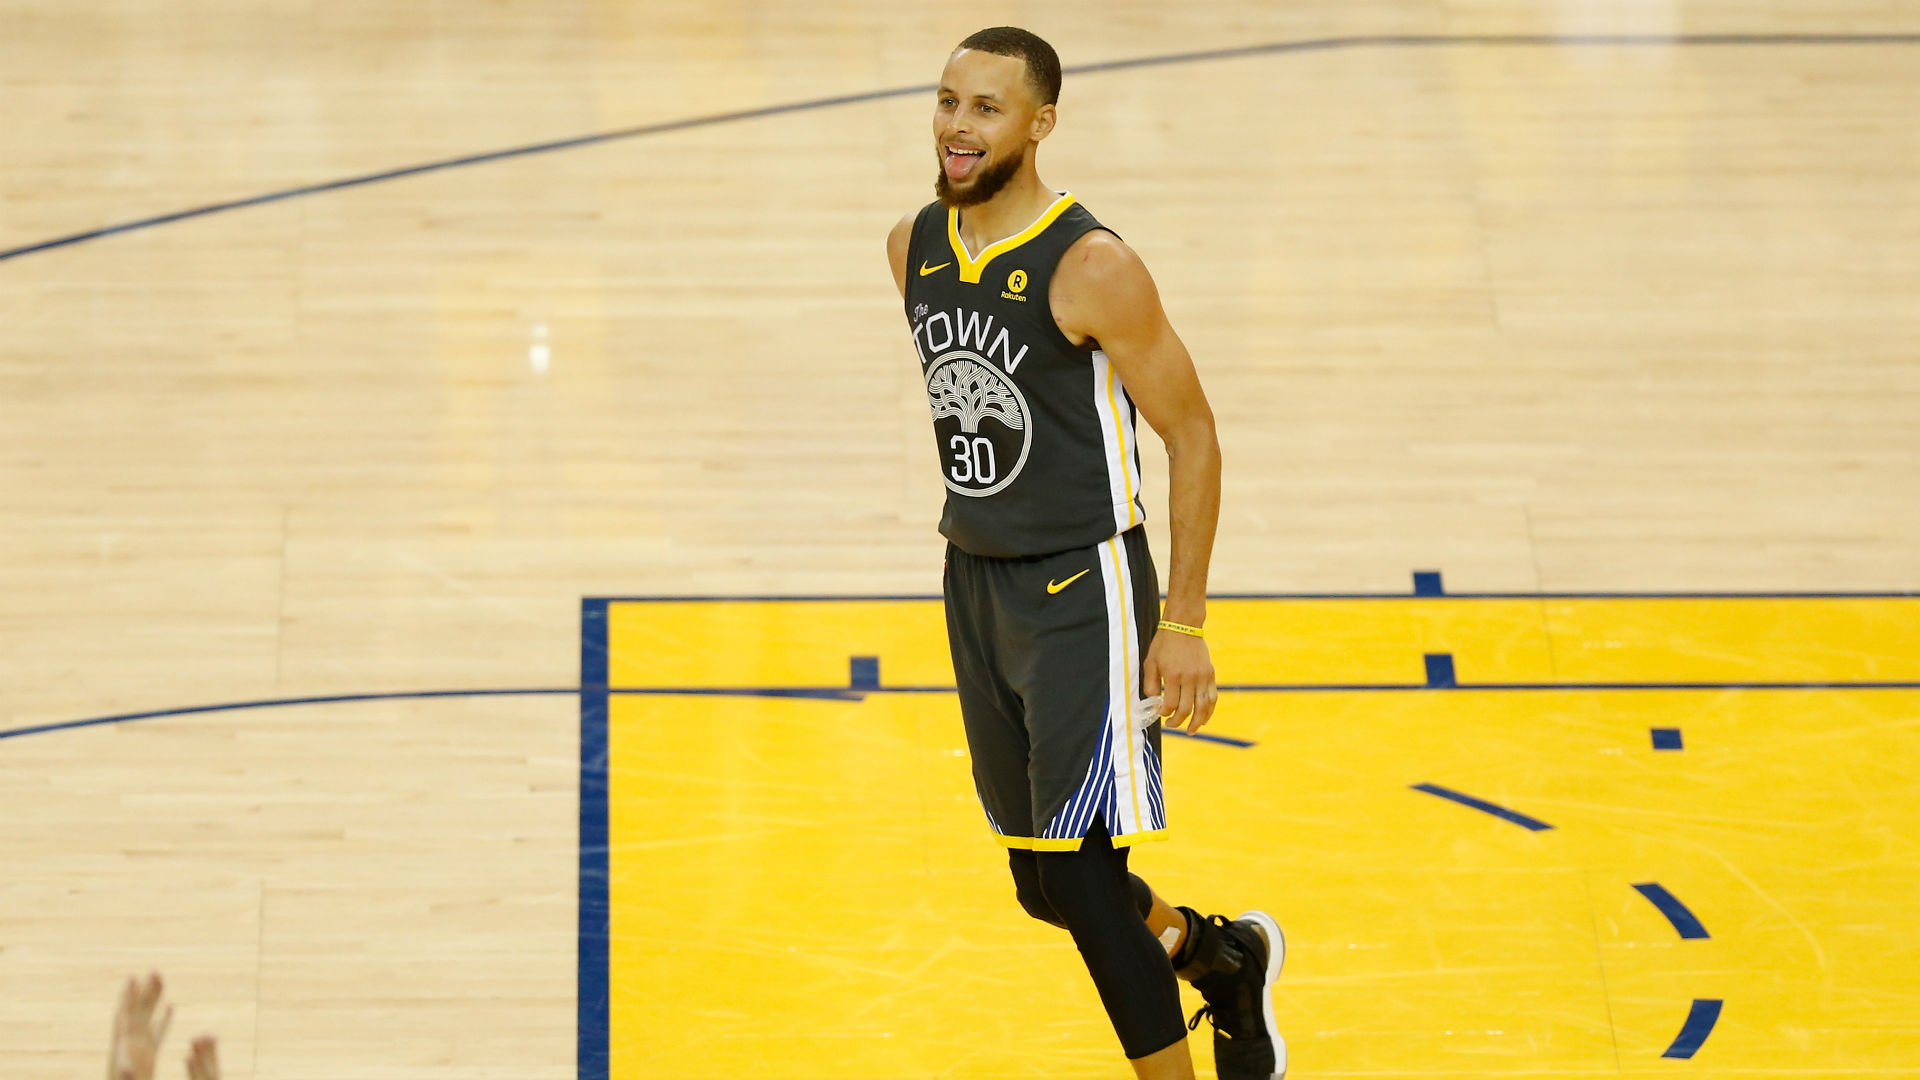 Game 2 features full Stephen Curry experience, a show unlike any other | NBA | Sporting News